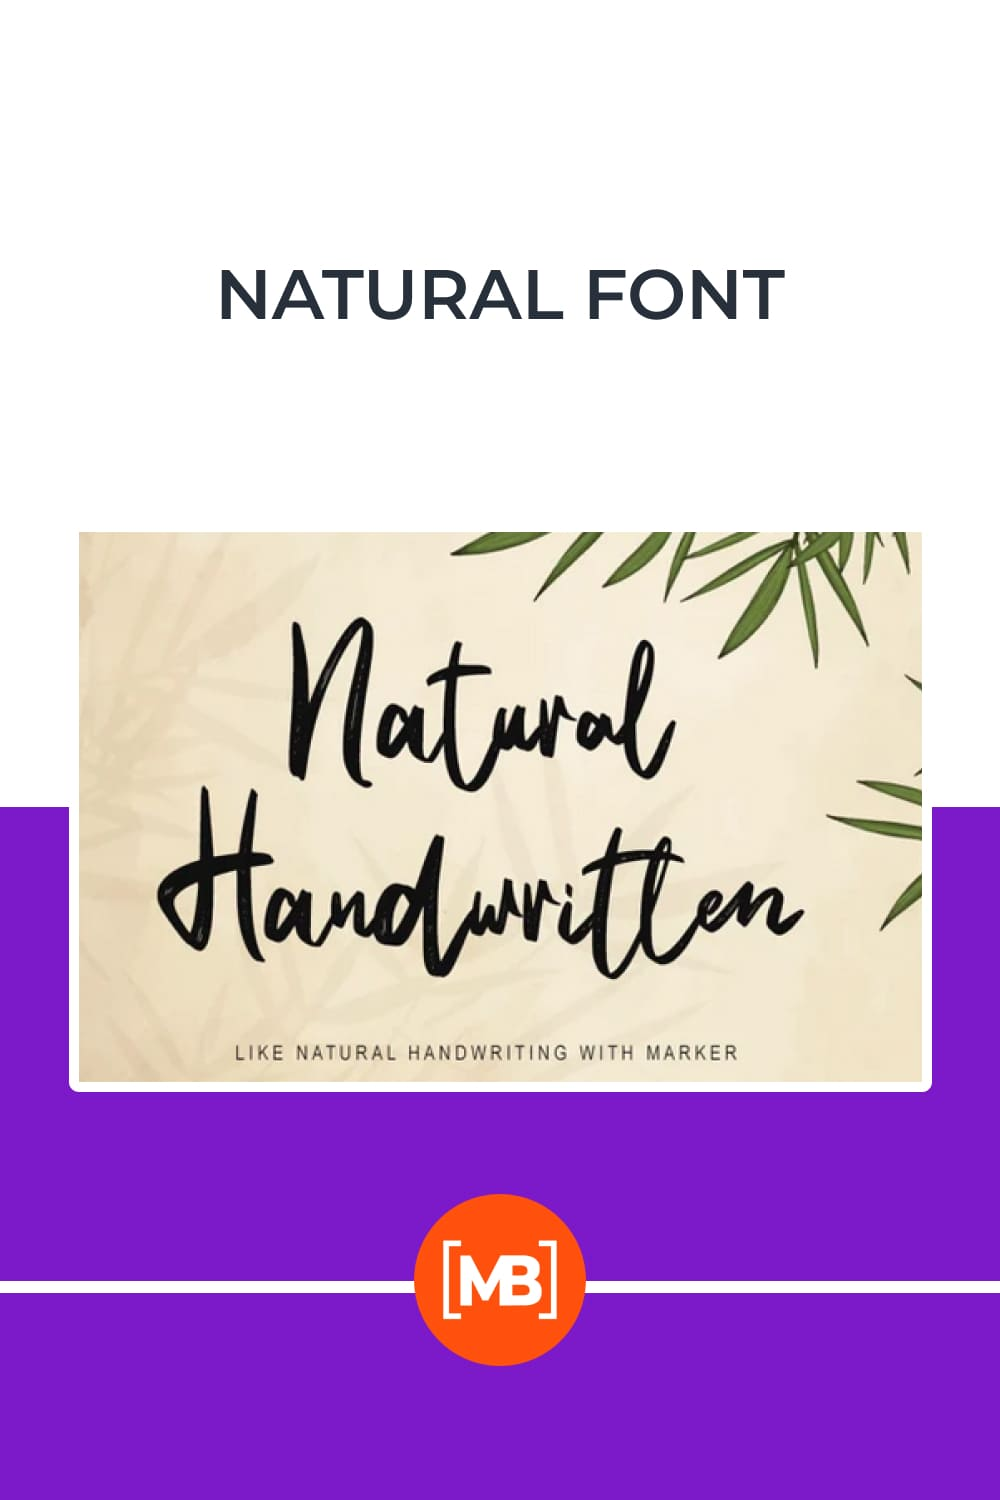 Natural Handwritten feels just as charming and elegant.